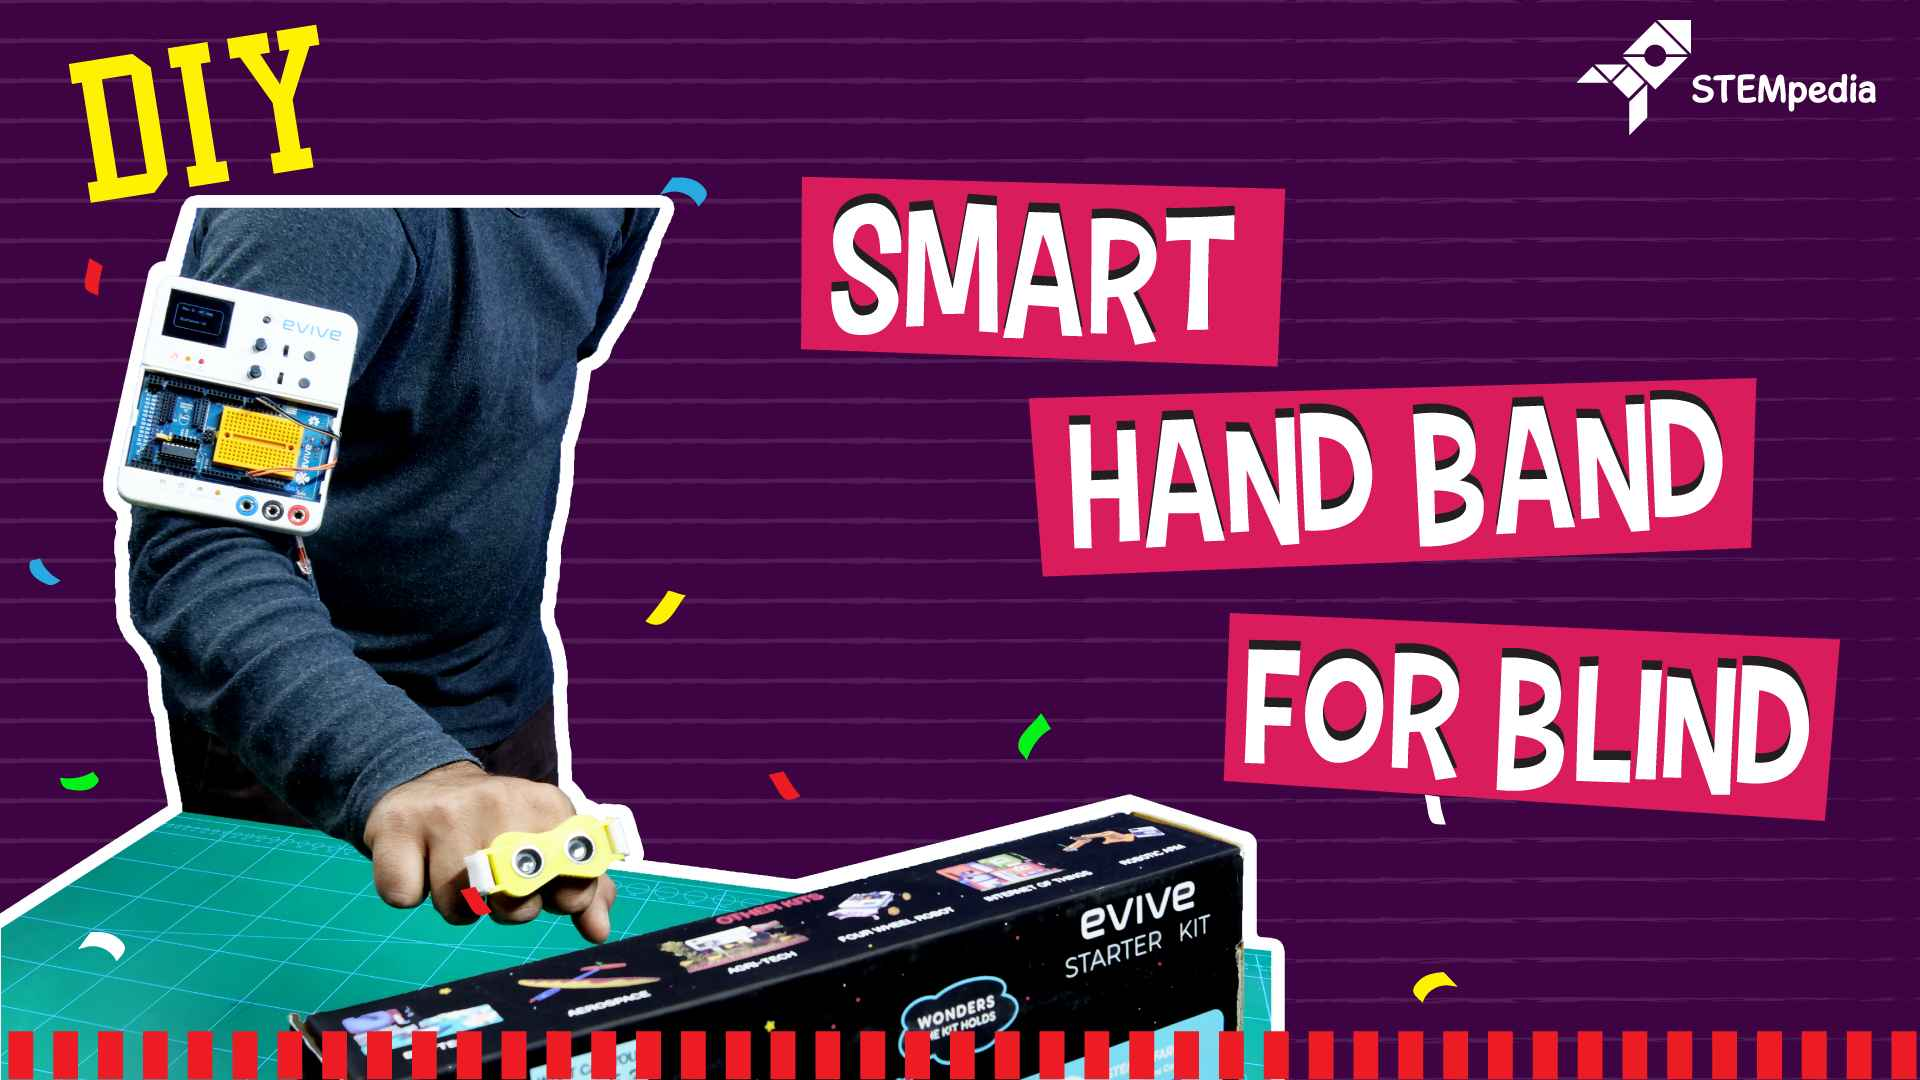 Smart-hand-band-for-blind